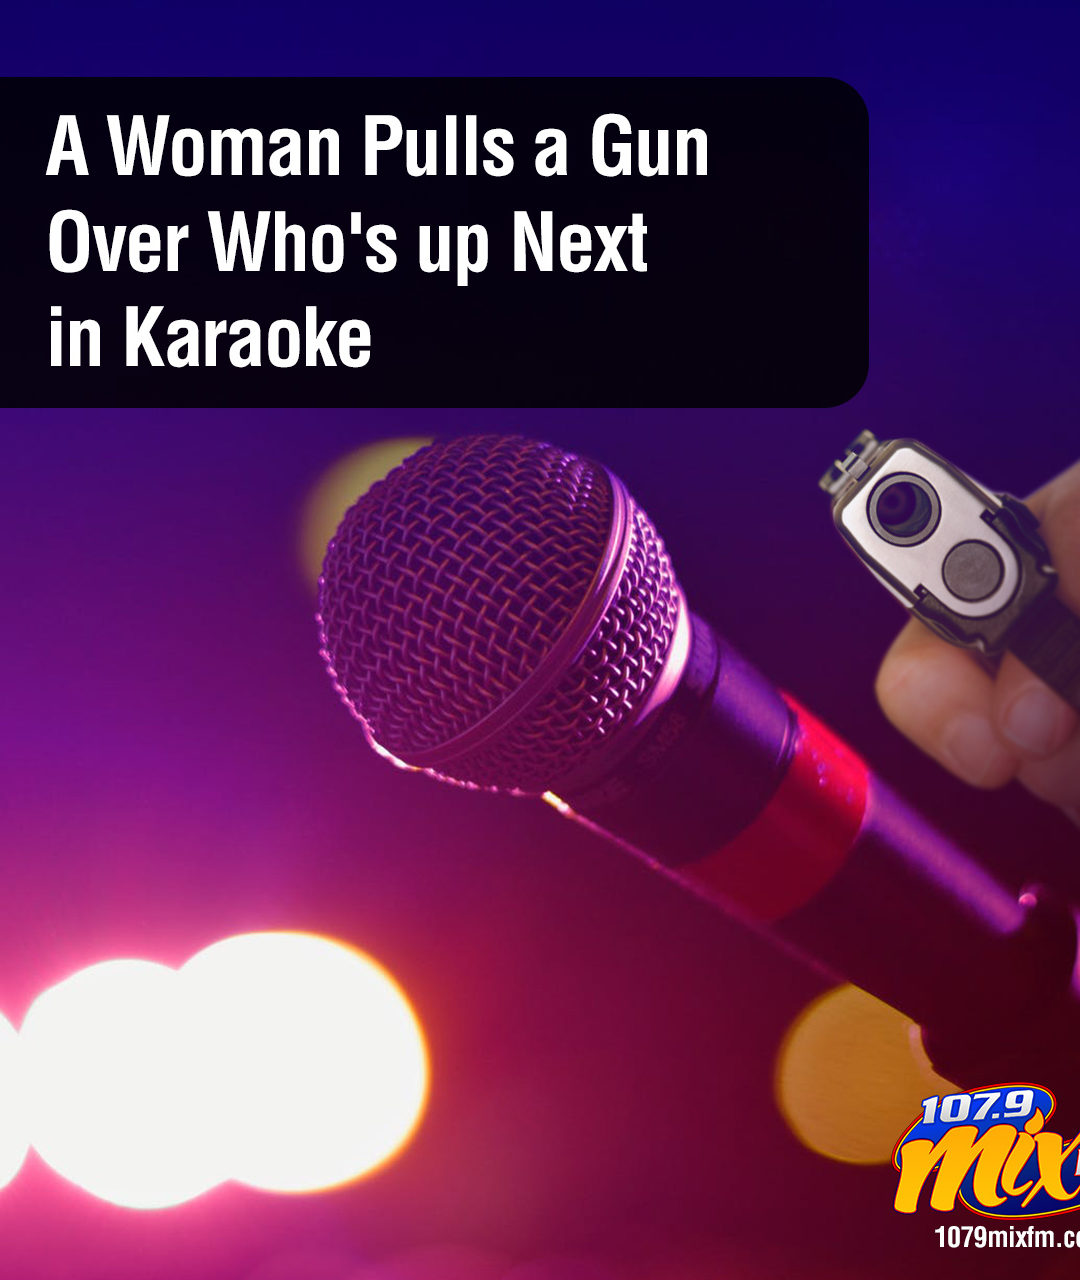 A Woman Pulls a Gun Over Who's up Next in Karaoke